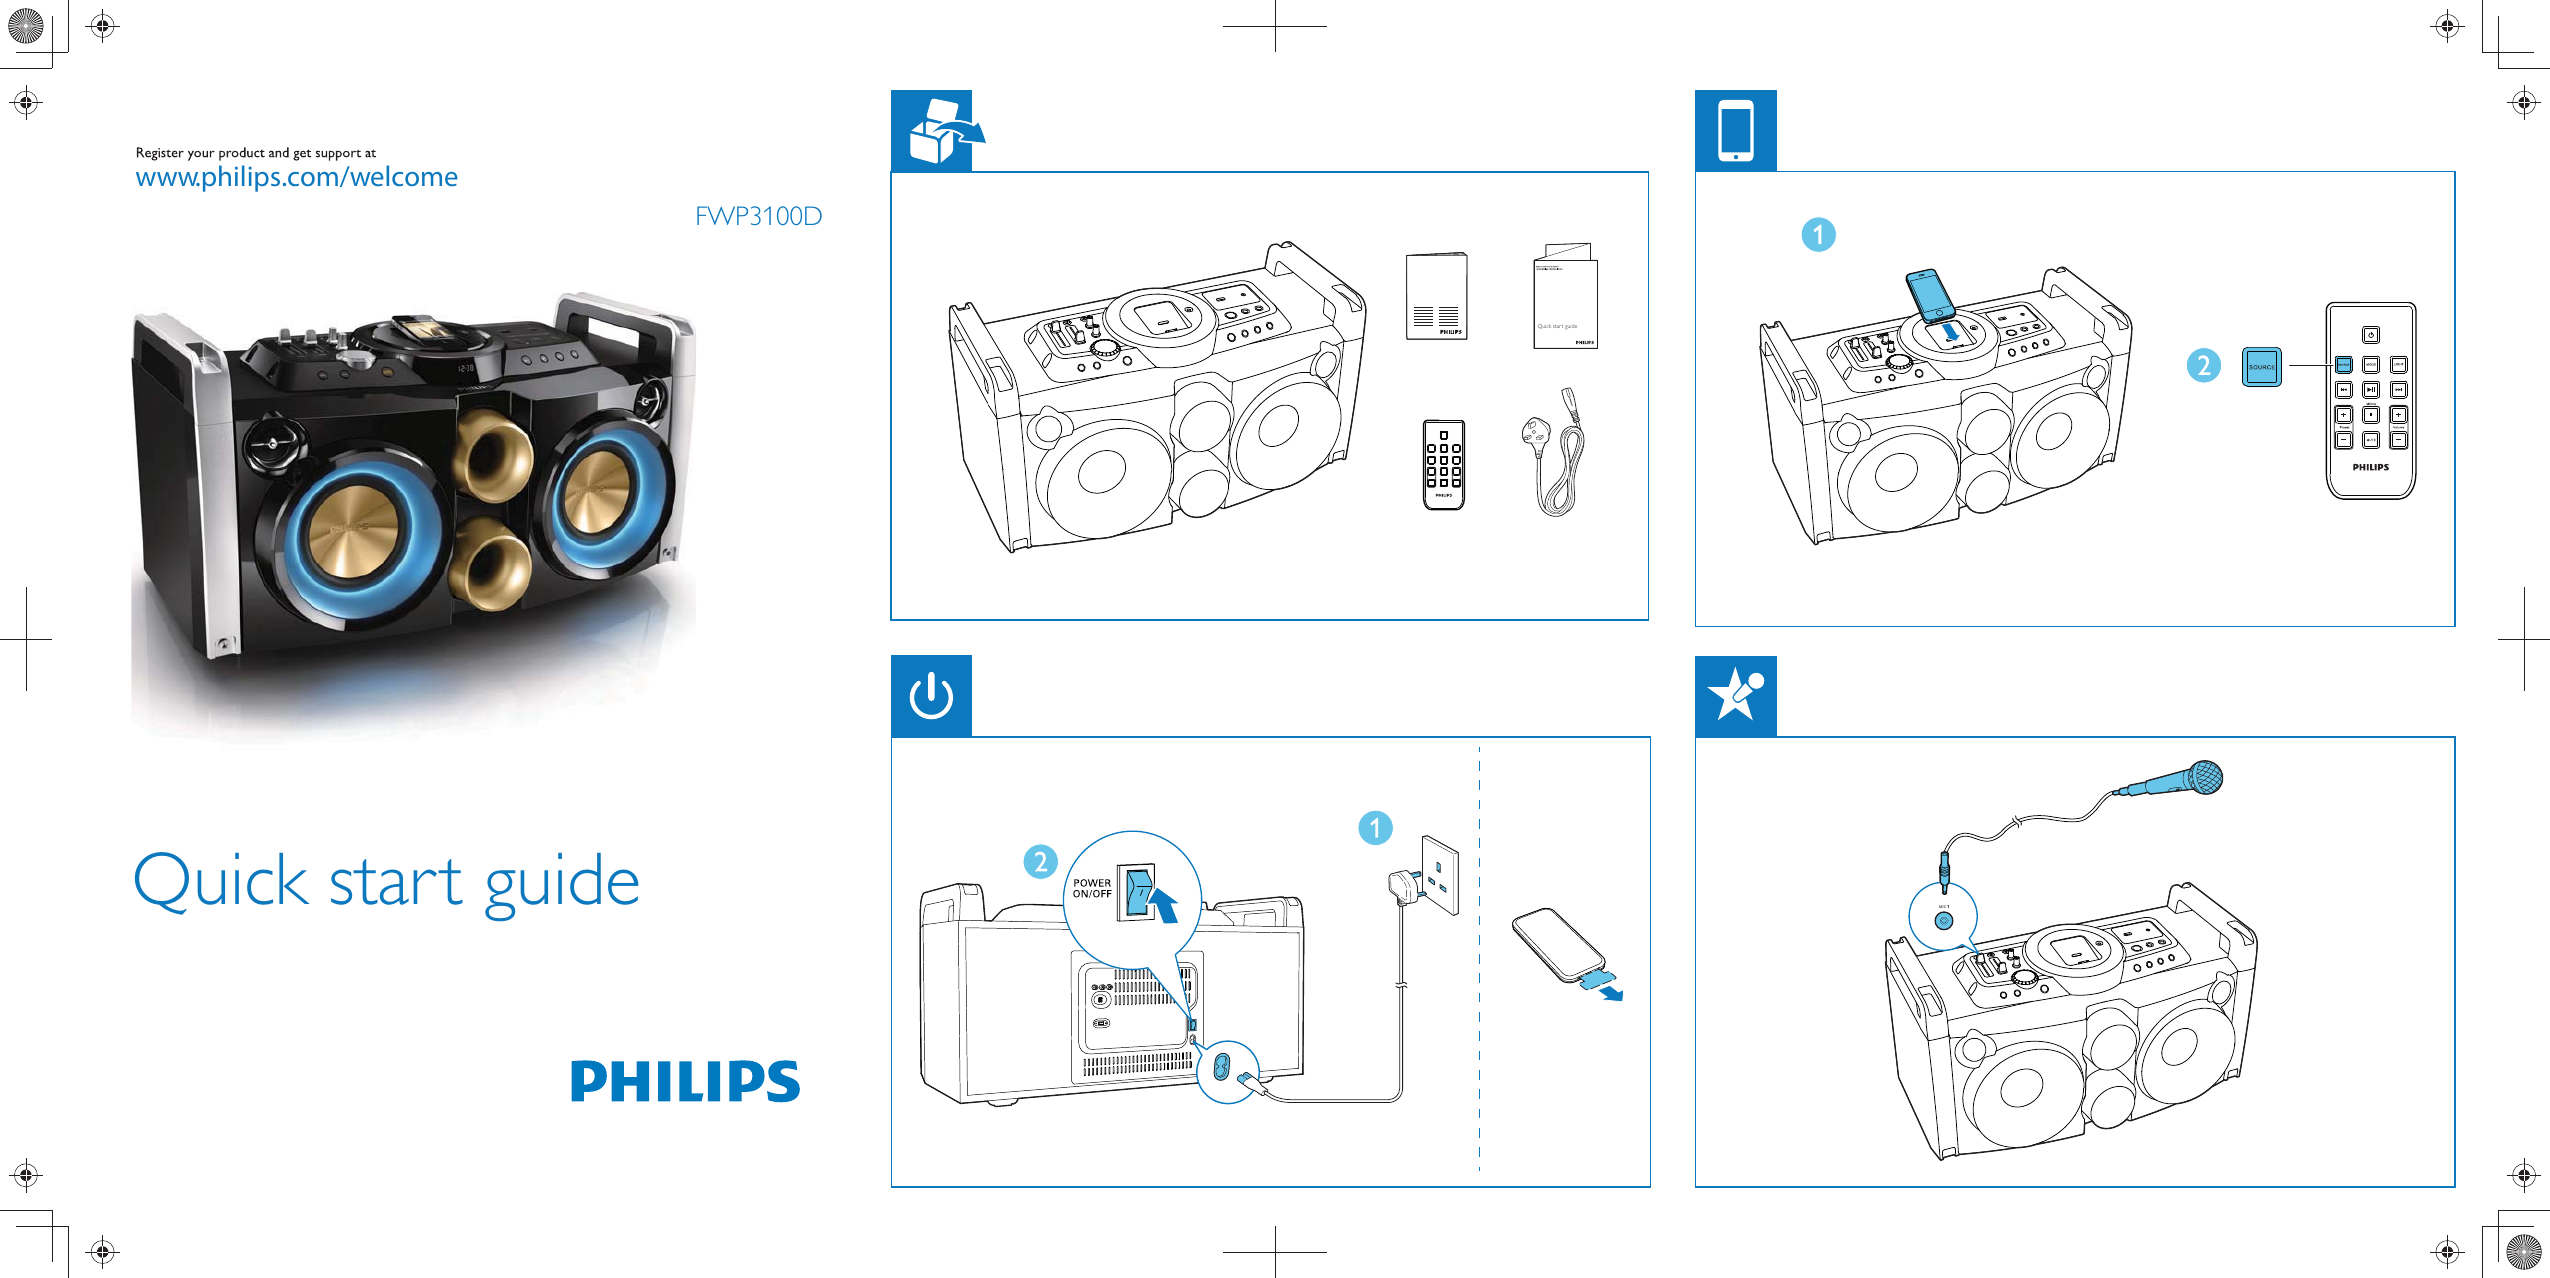 Philips Fwp3100d 05 Qsg V10 User Manual Lynhndbog 3100 Engine Diagram Aen